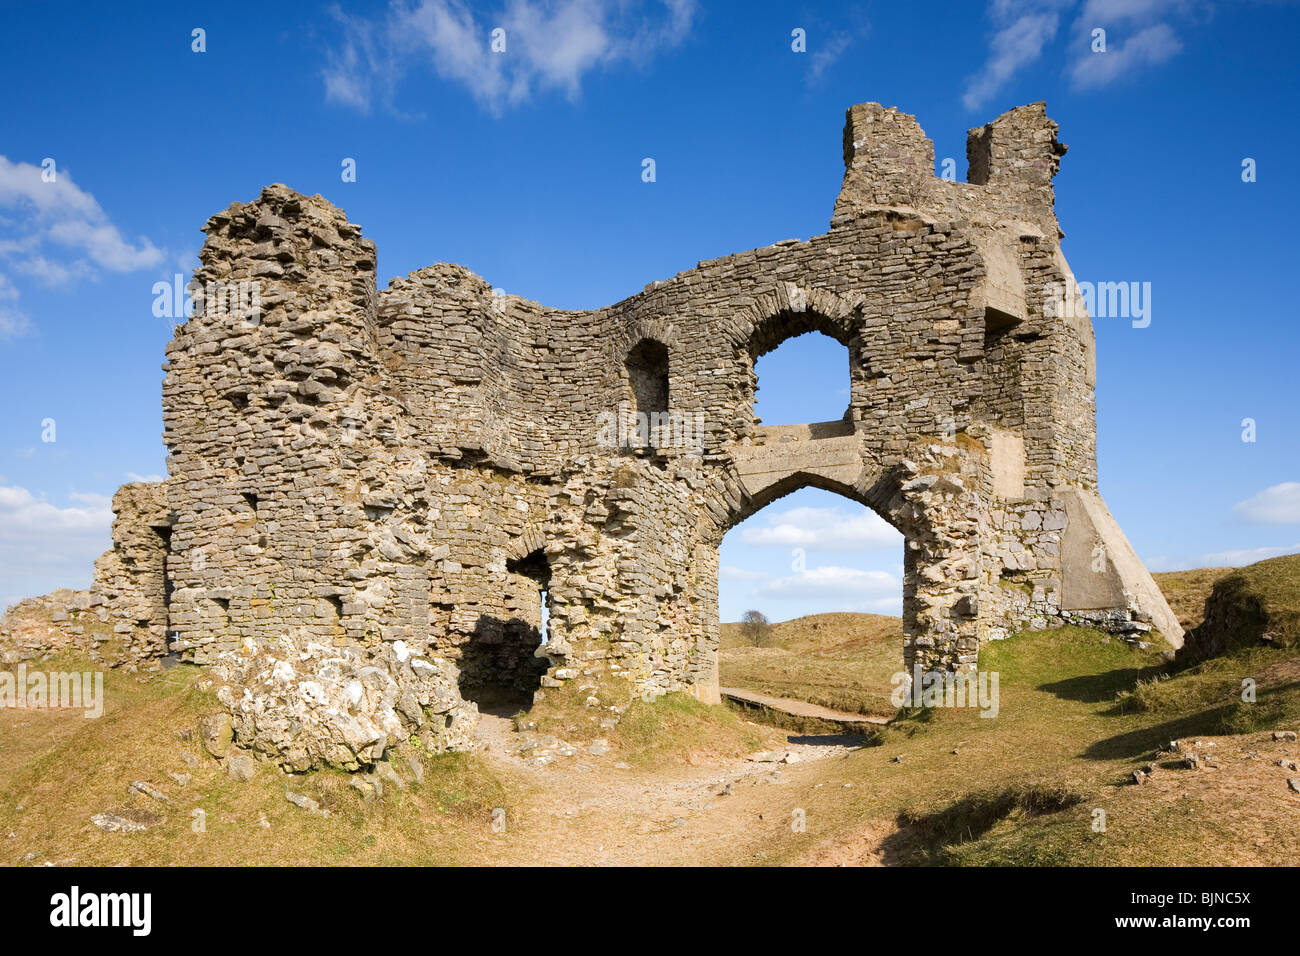 Pennard Castle ruins overlooking Three Cliffs Bay The Gower Peninsula South Wales UK - Stock Image